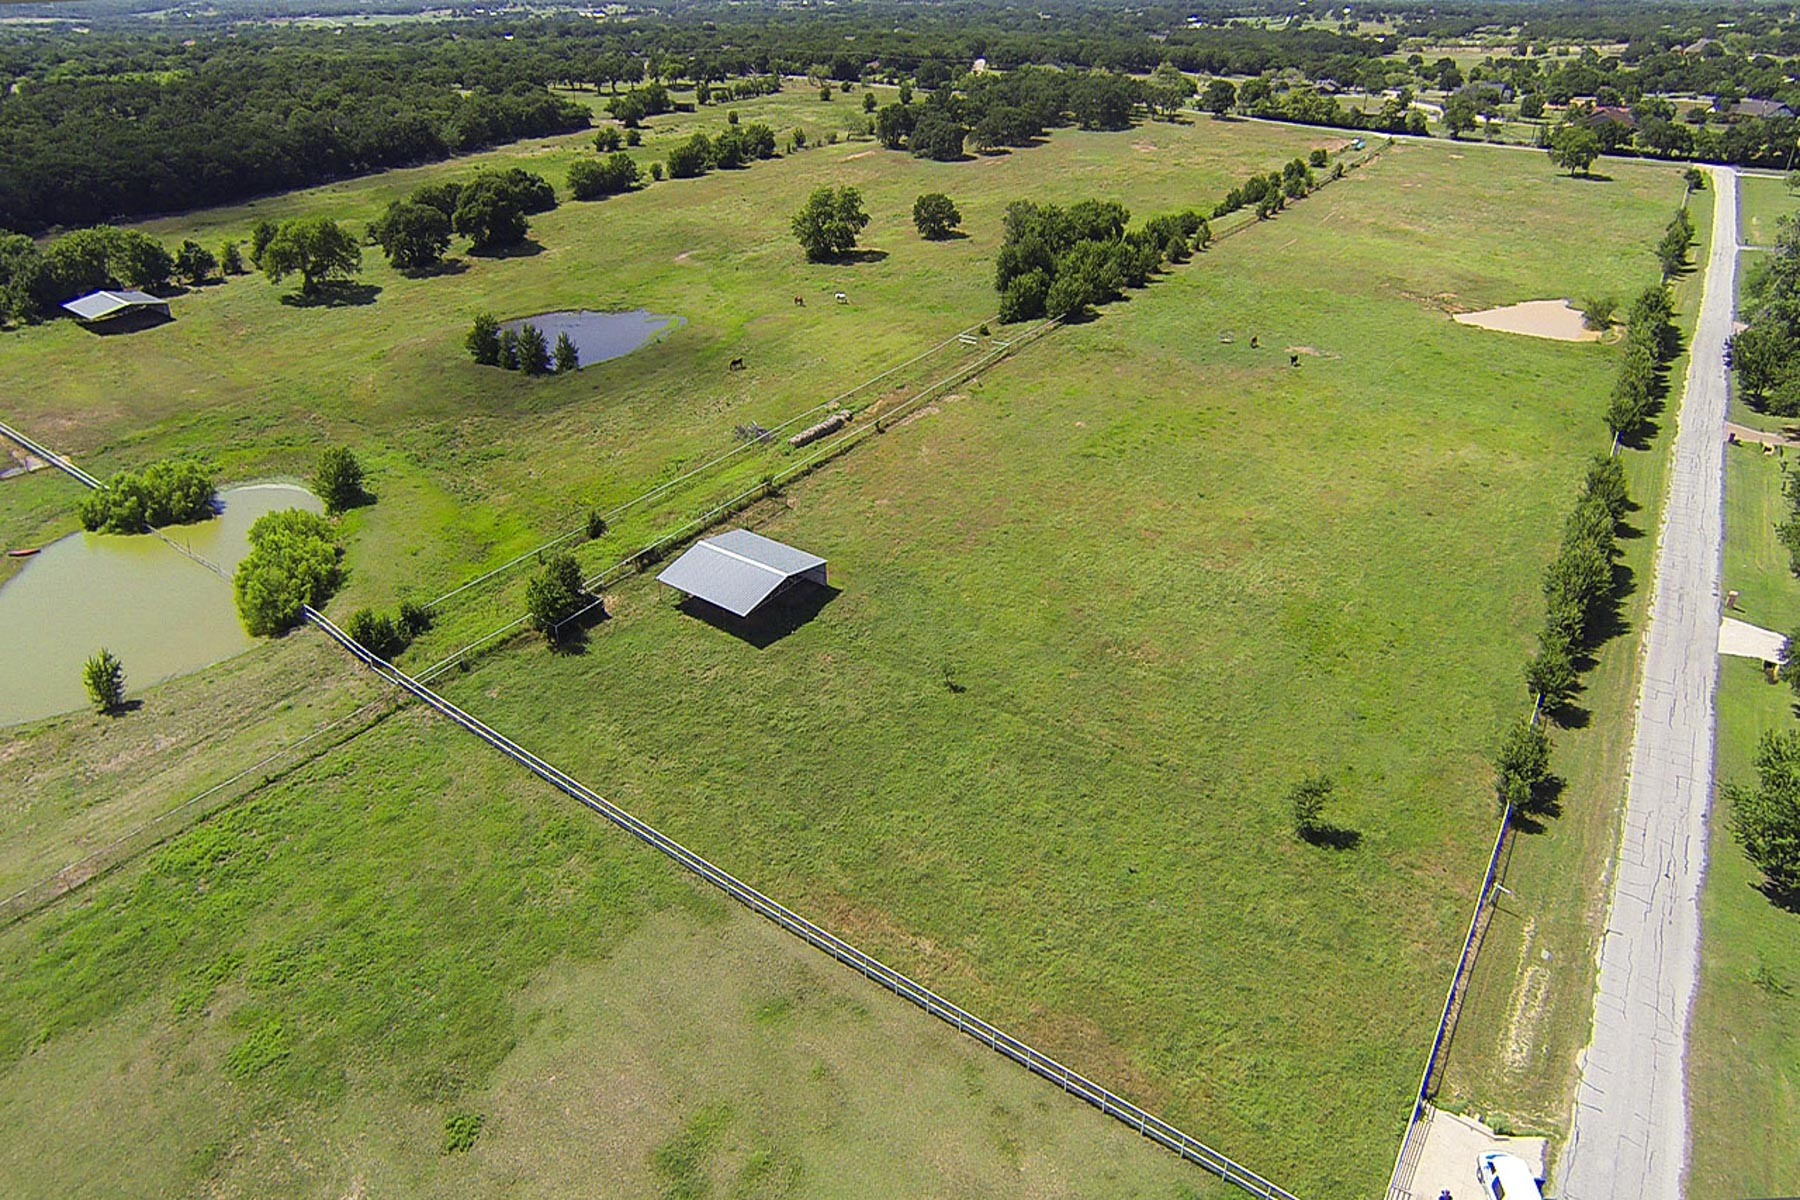 Land for Sale at Pristine 2 Acre Lot 1080 Rockgate Rd S Bartonville, Texas 76226 United States